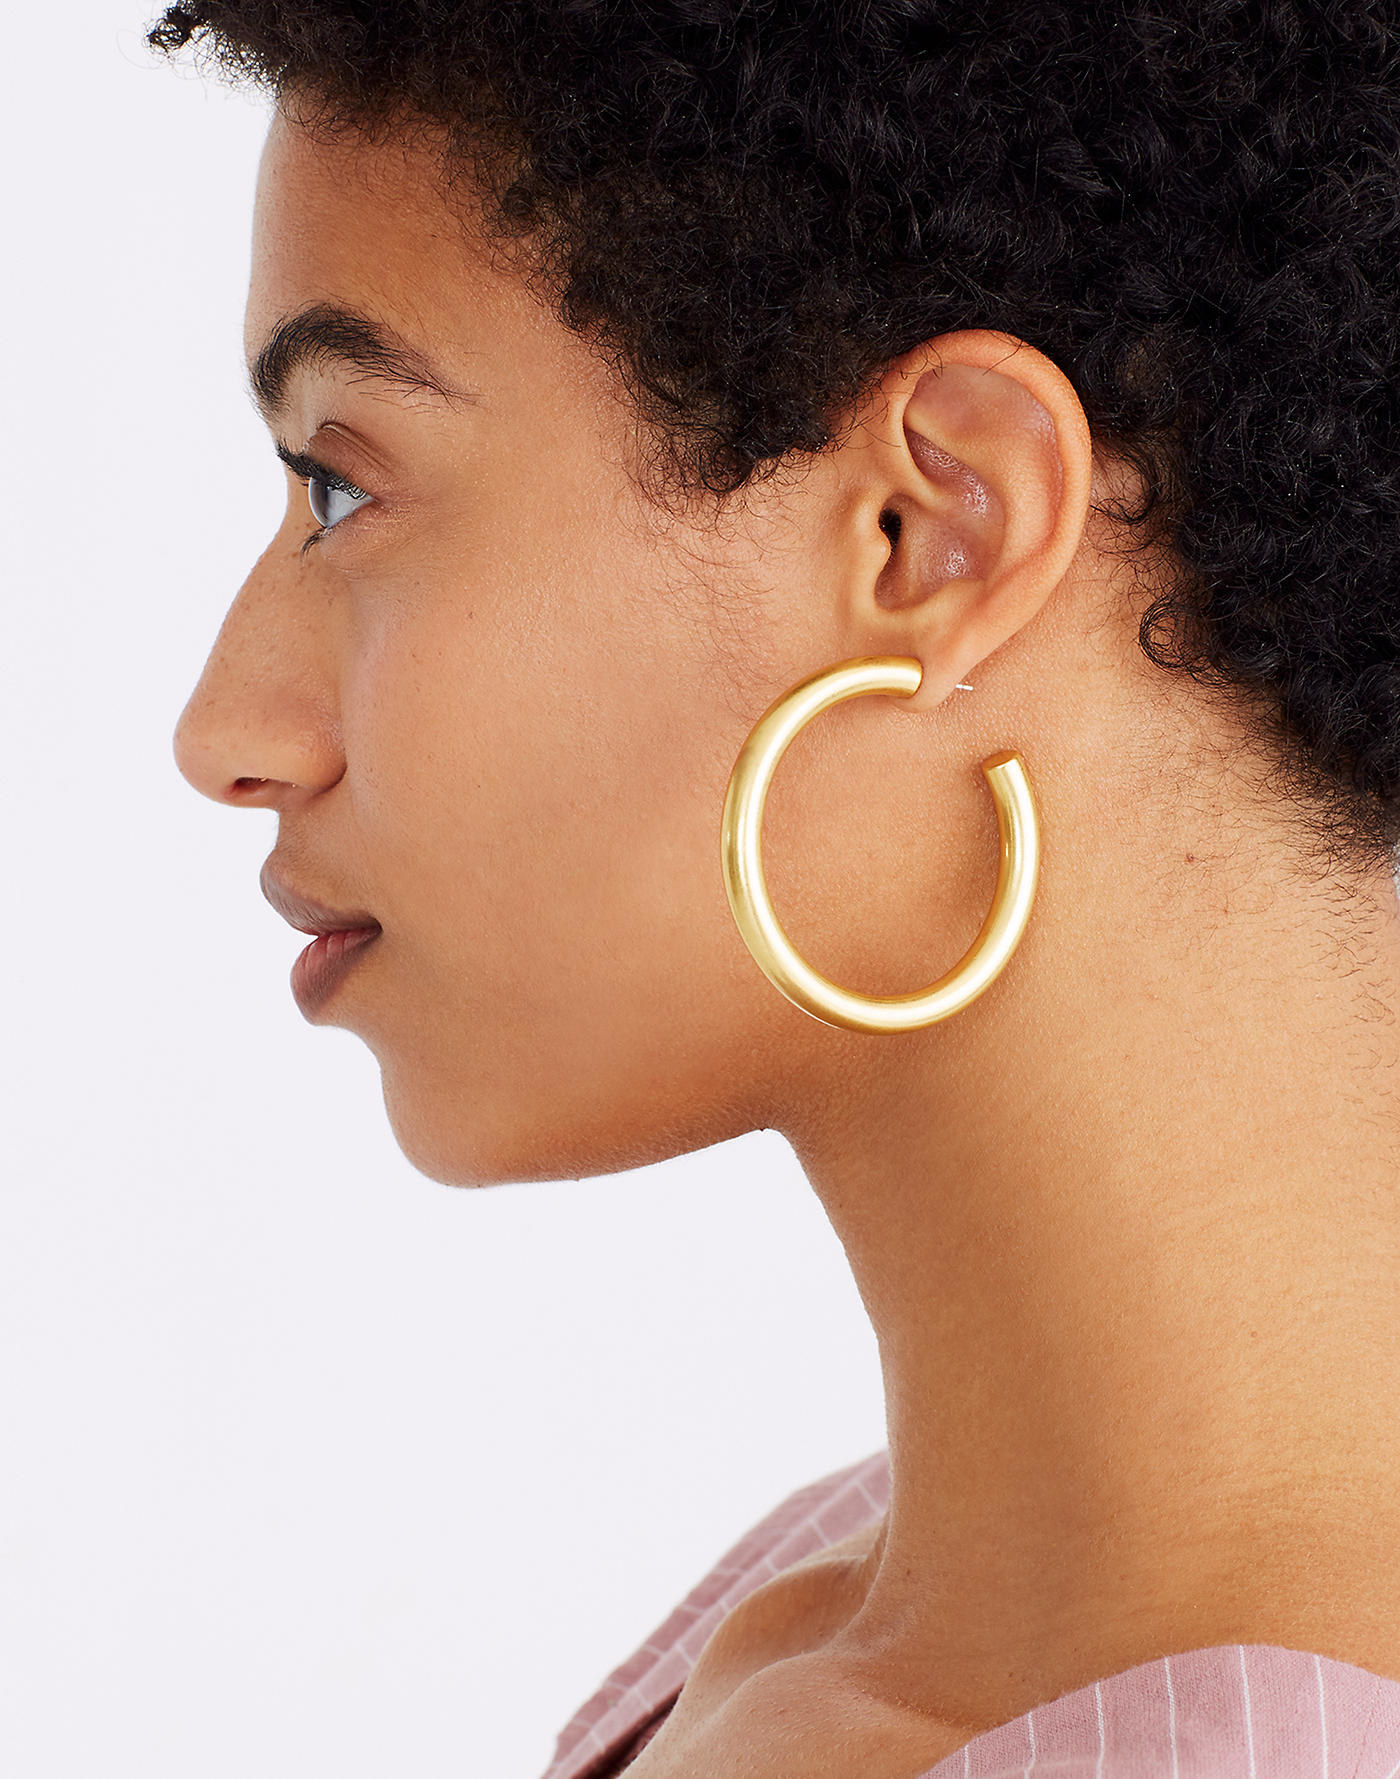 Model wearing the oversized hoops face to the side to illustrate the size, which is about the same diameter as a cup